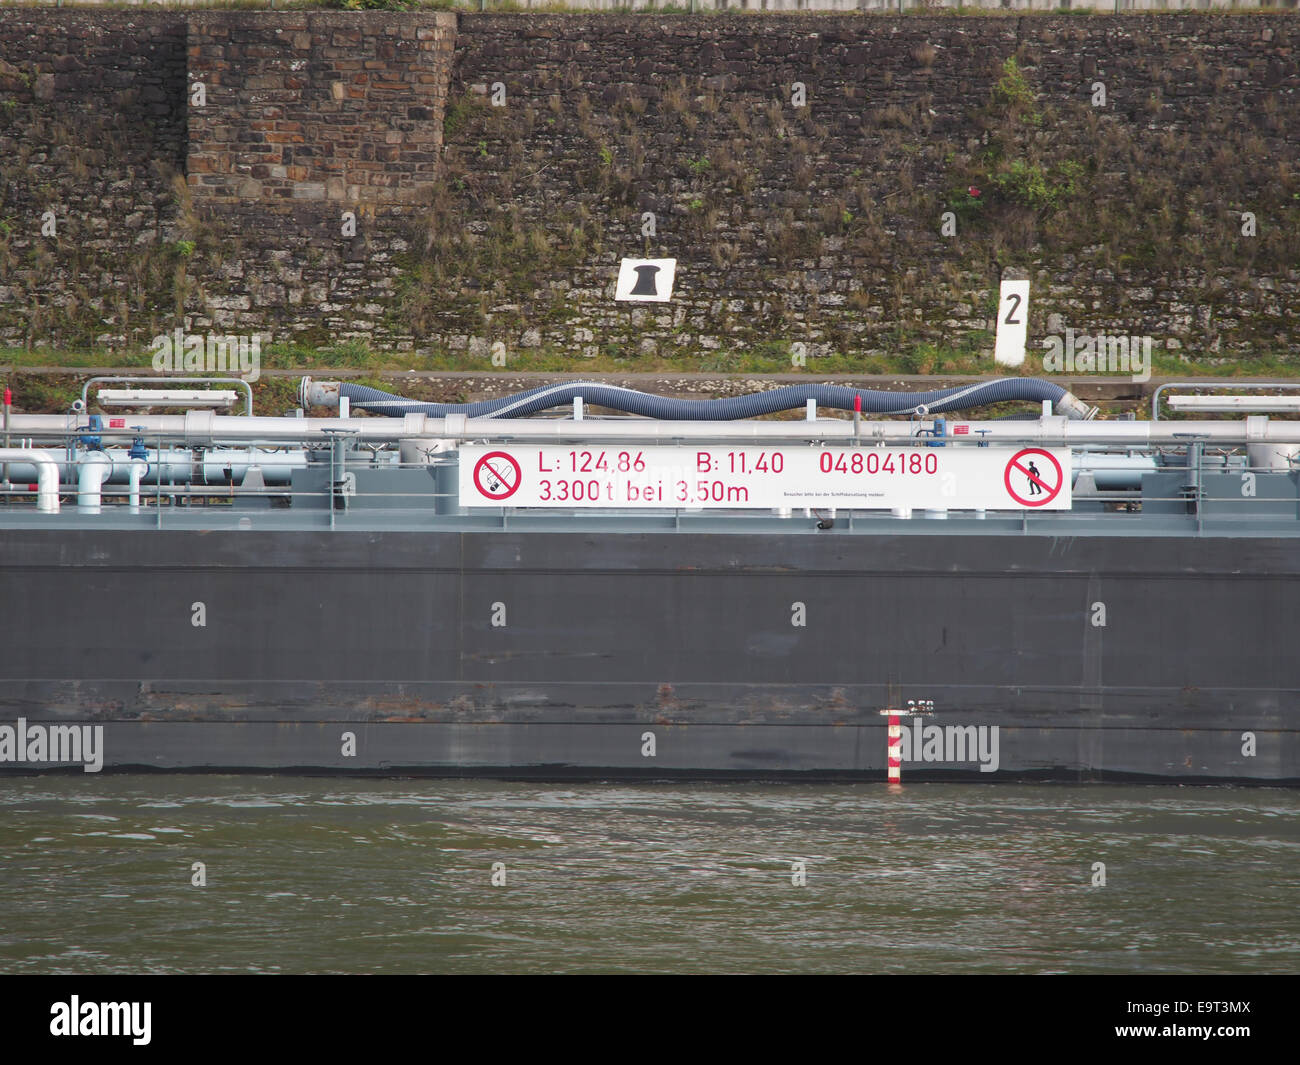 Eiltank 44, ENI 04804180 on the Rhine river at Koblenz, pic4 - Stock Image